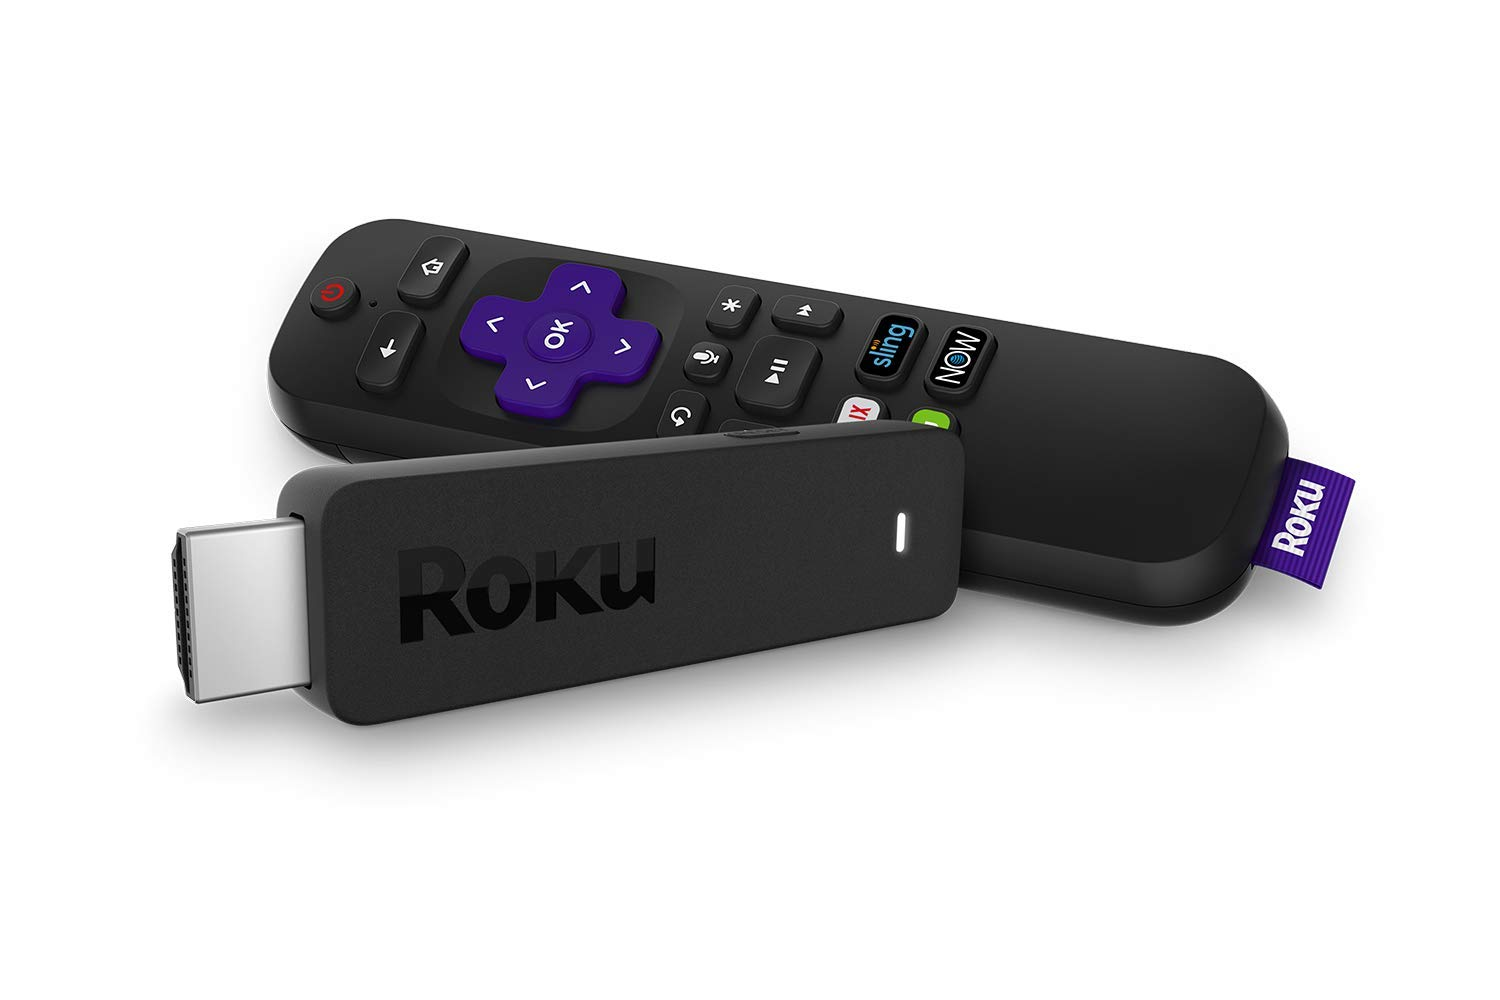 Best holiday gifts for travelers who love tech - Roku Streaming Stick